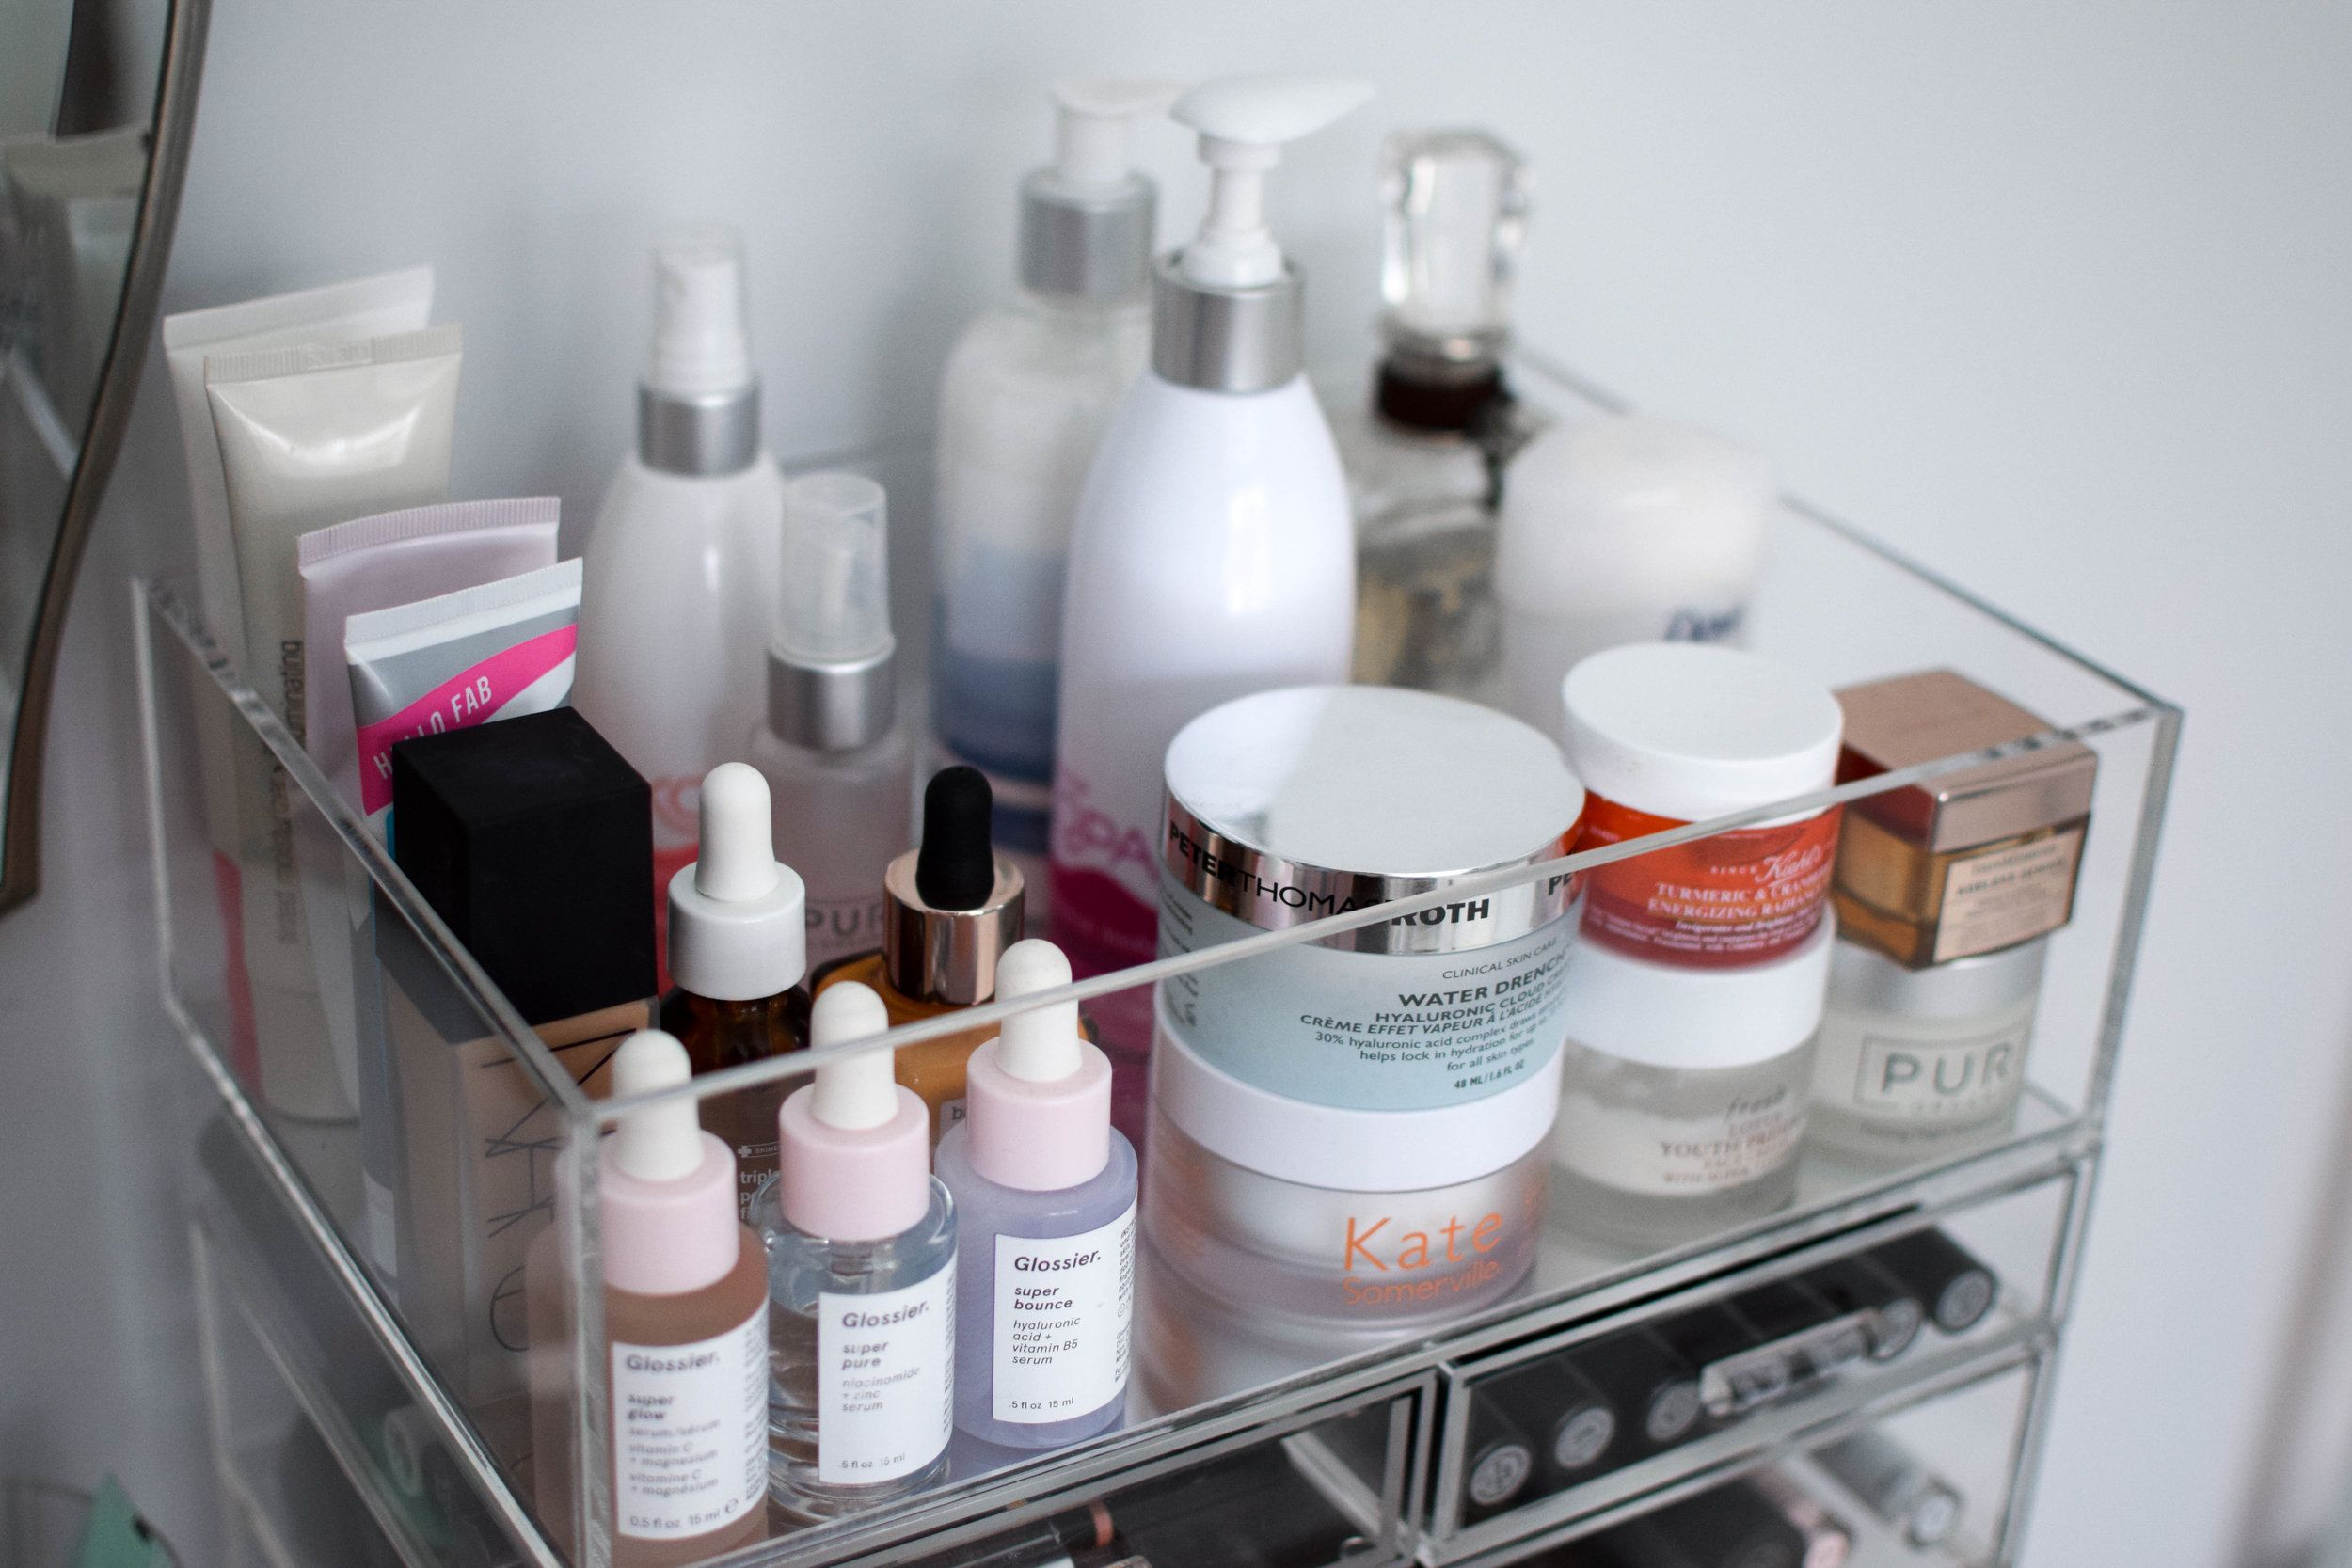 How I Store Organize My Makeup Products Pine Barren Beauty Acrylic Makeup Storage Beauty Organization Store Organization